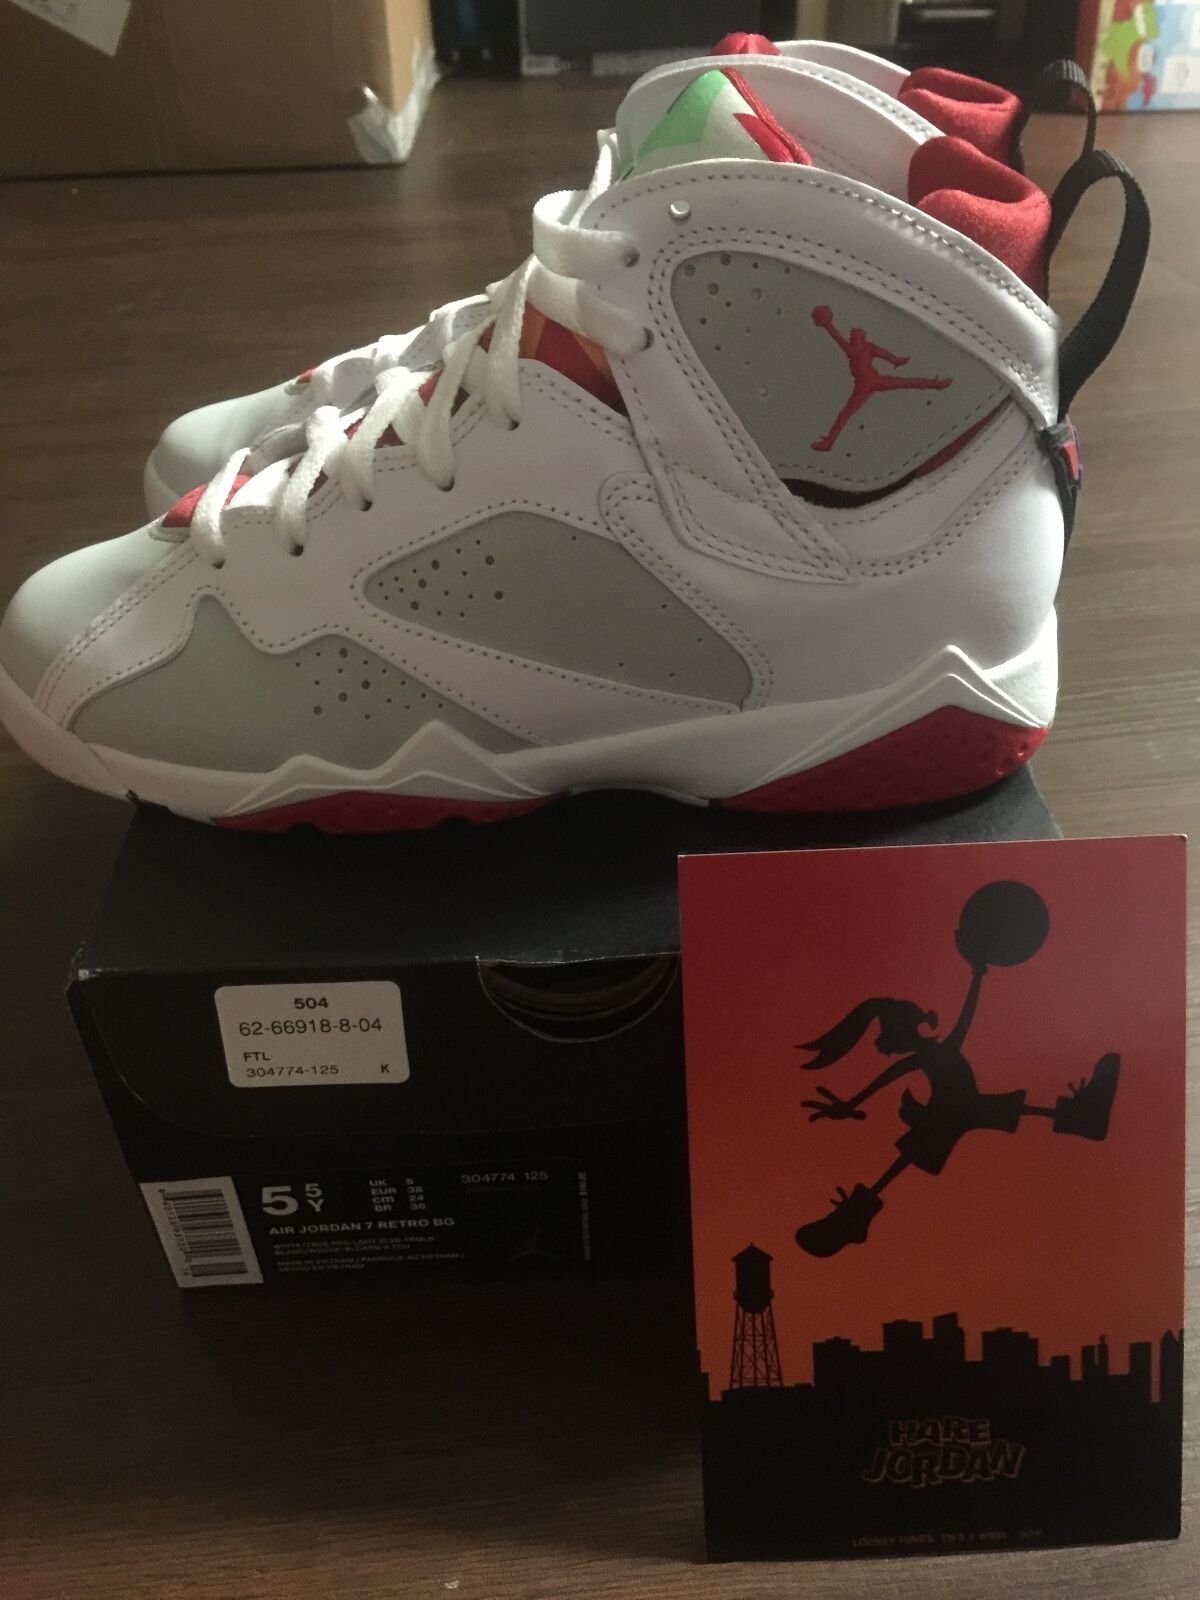 New Nike Air Jordan Retro 7 BG - HARES - NIB/DS - Comfortable New shoes for men and women, limited time discount